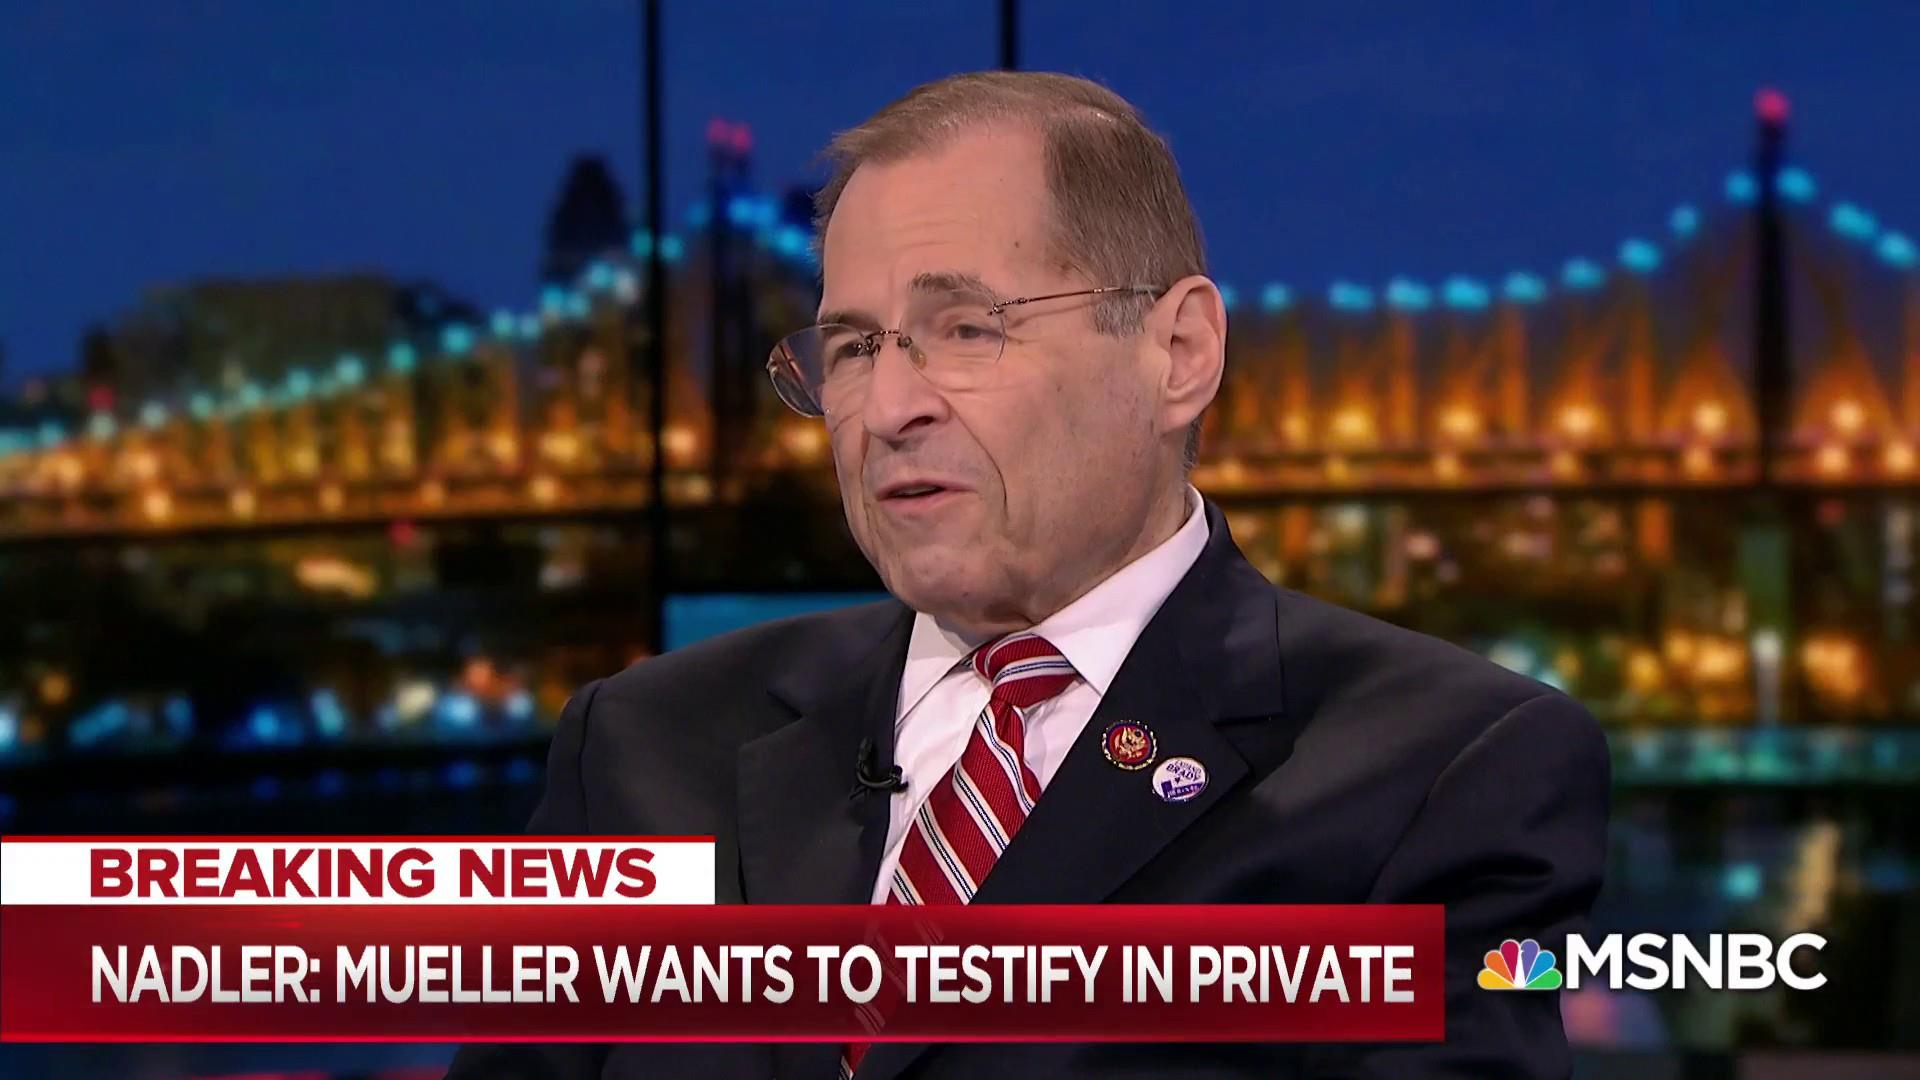 Rep. Nadler: Robert Mueller wants to testify to Congress — but in private